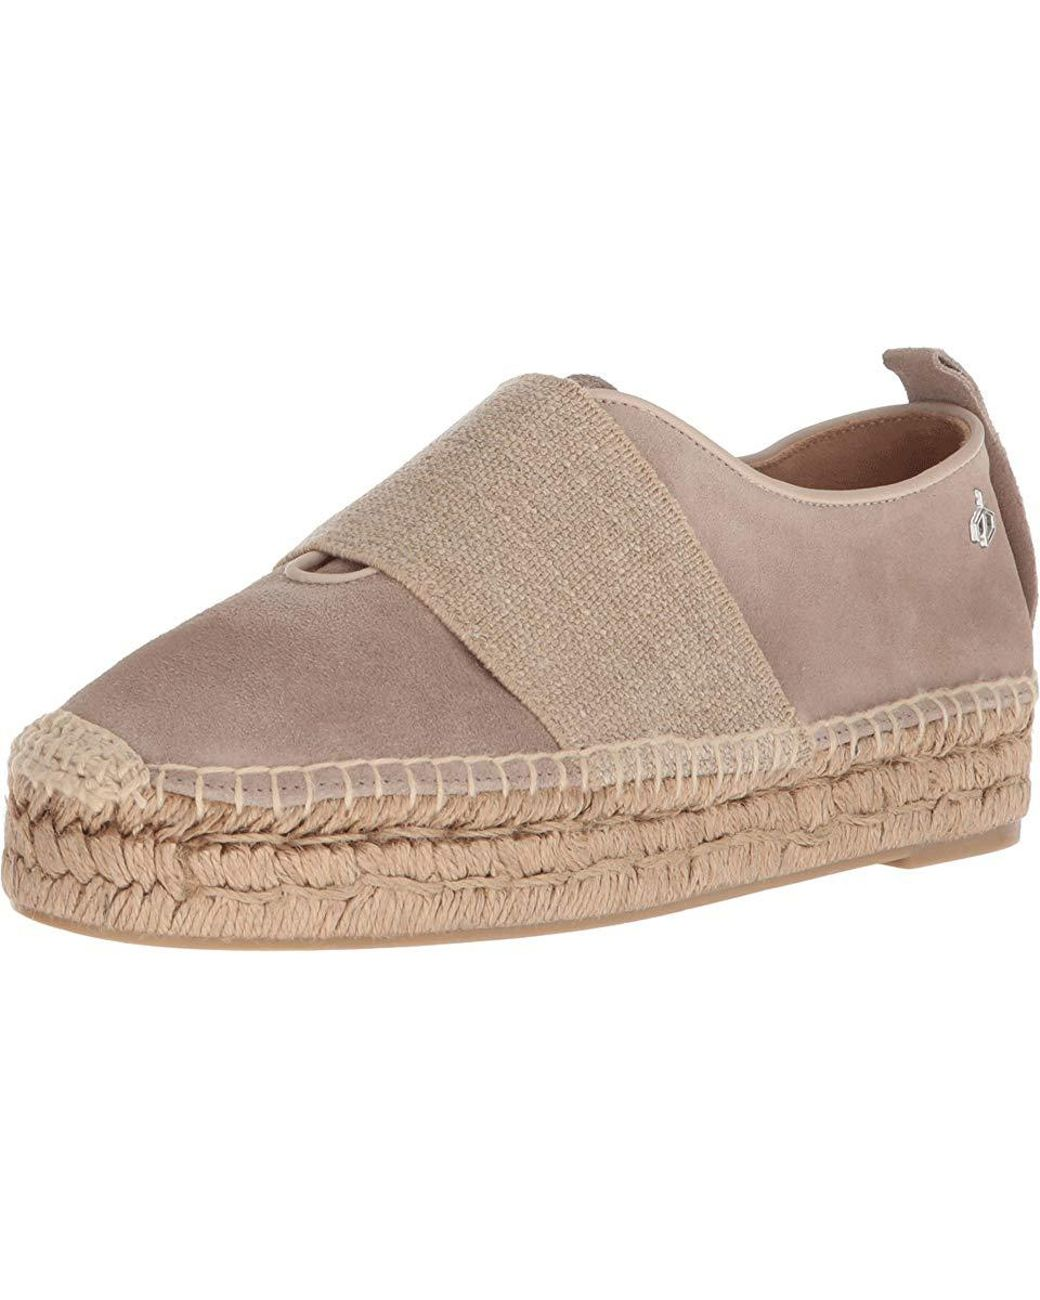 14e15a2ee Rag & Bone Nina Espadrille (smoke Suede) Shoes in Brown - Save 43% - Lyst